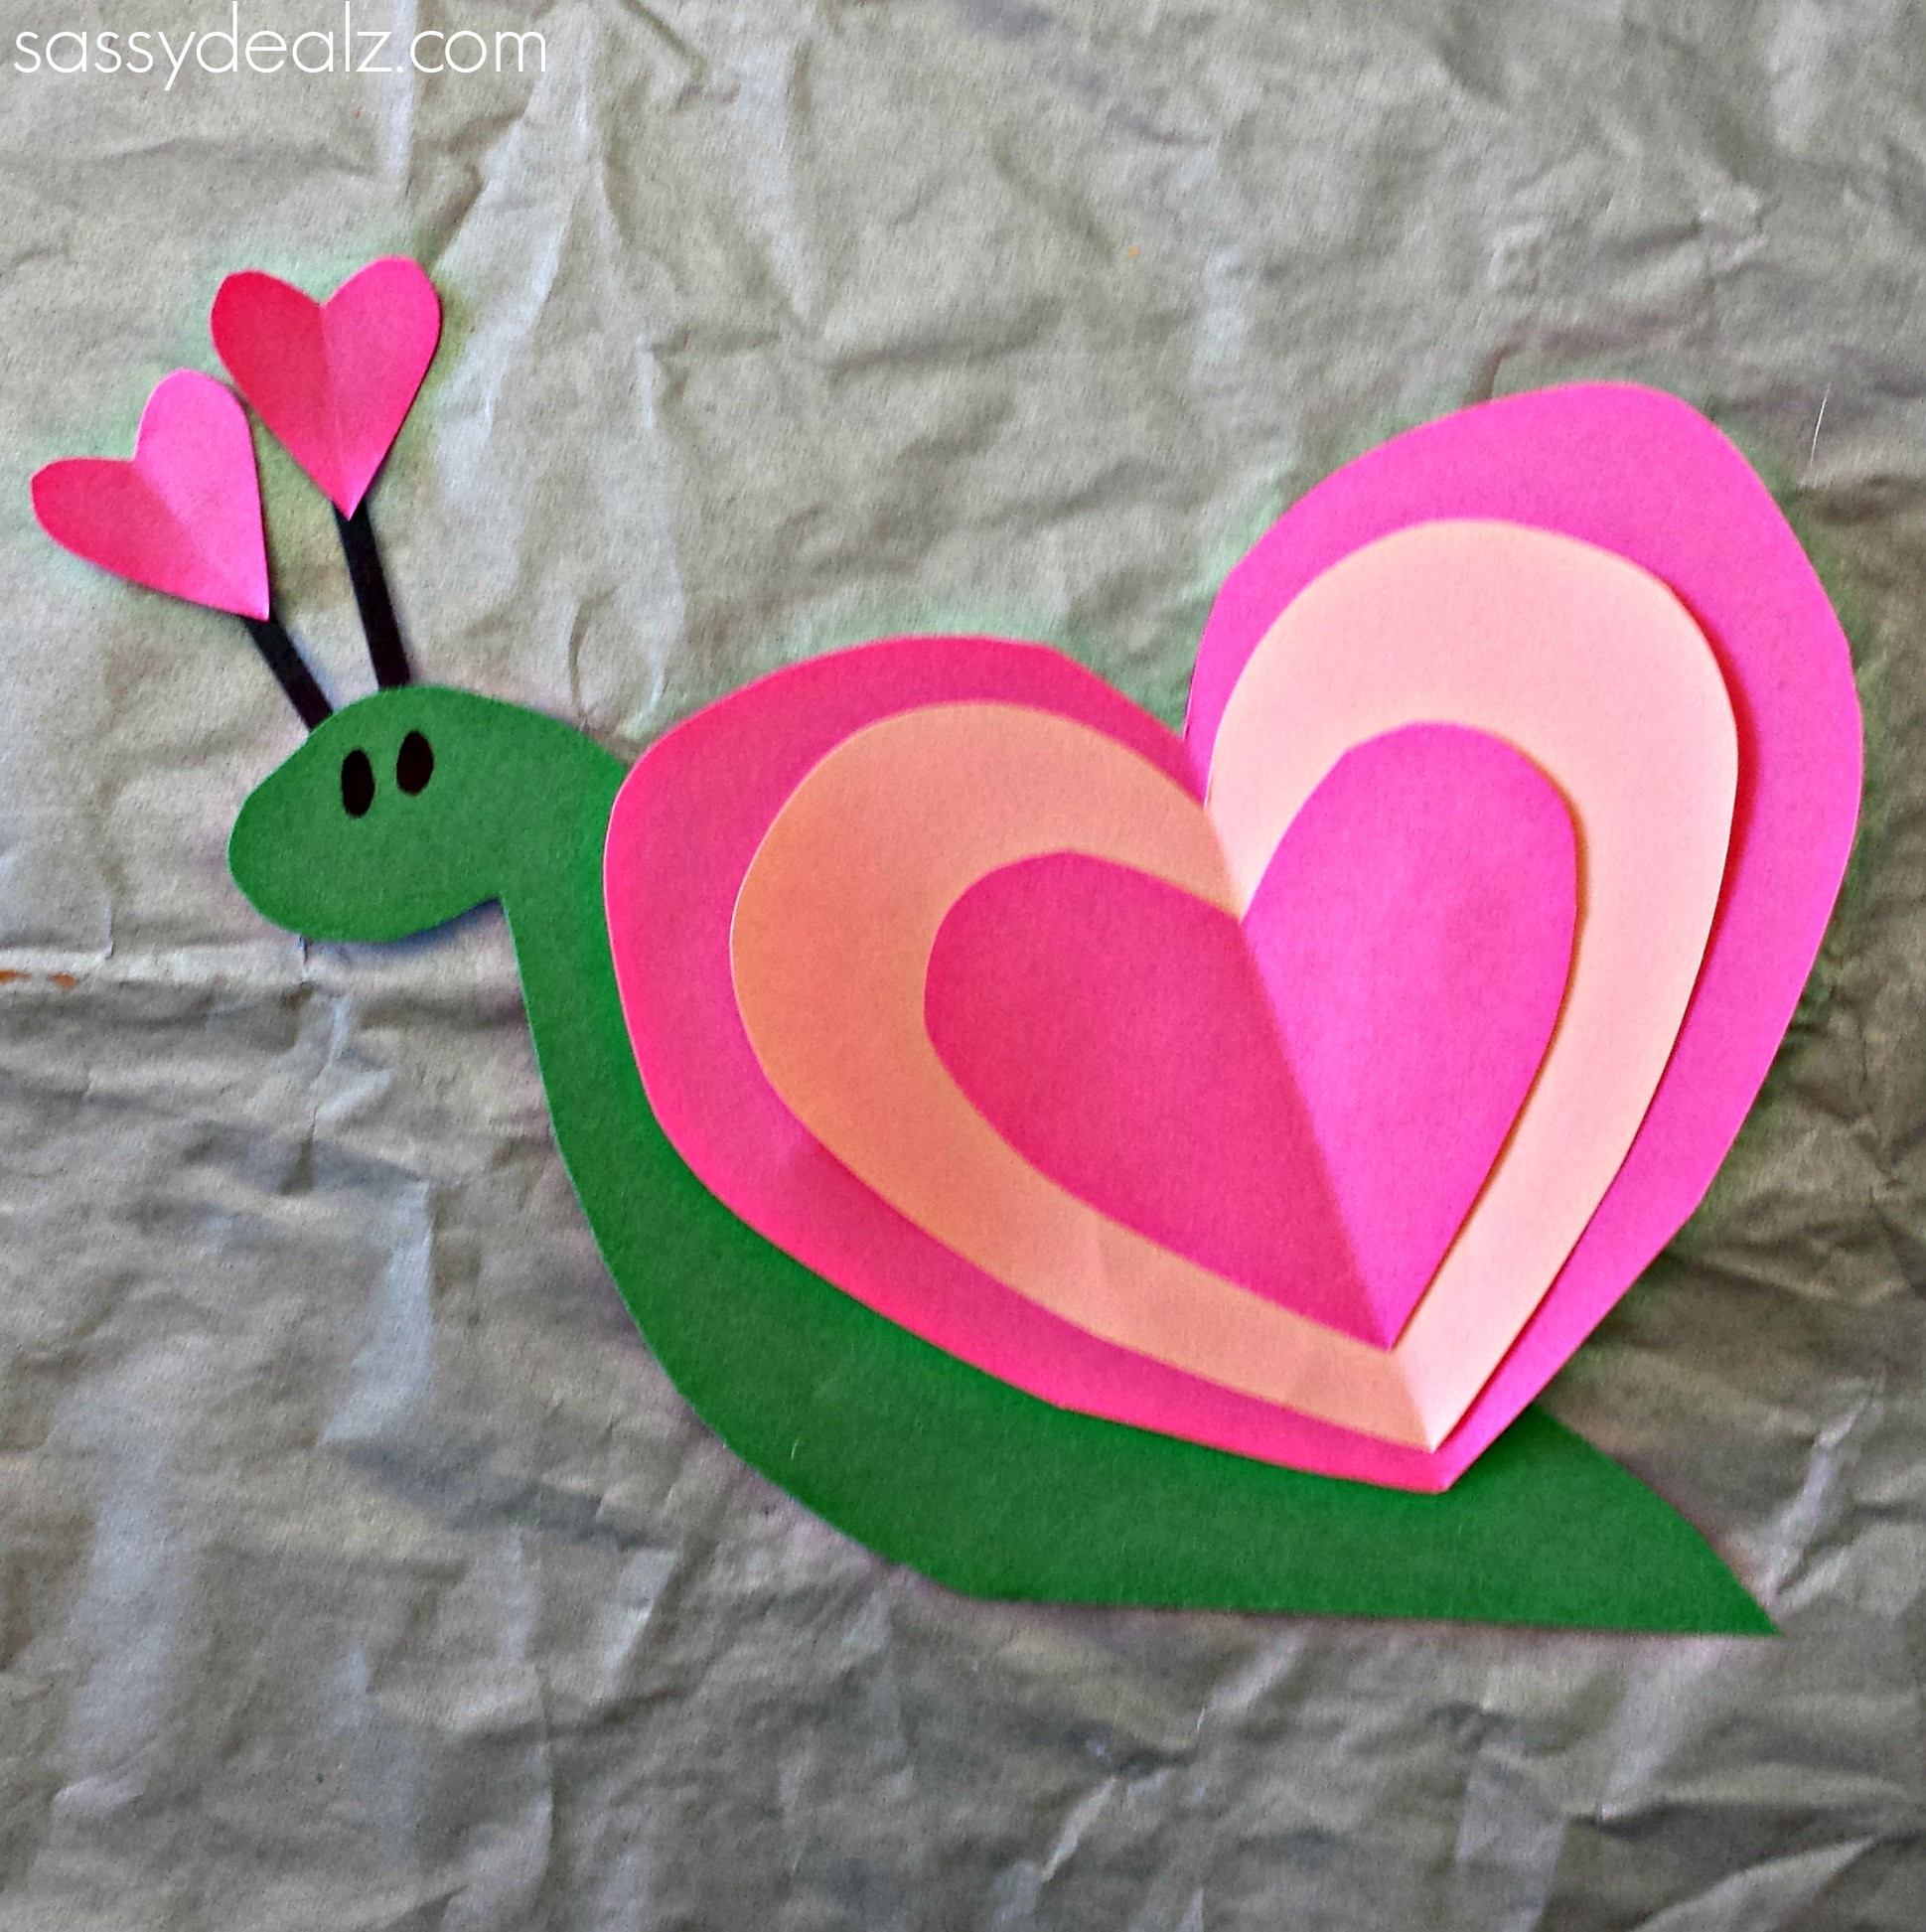 Best ideas about Art Crafts For Kids . Save or Pin Heart Snail Craft For Kids Valentine Art Project Now.